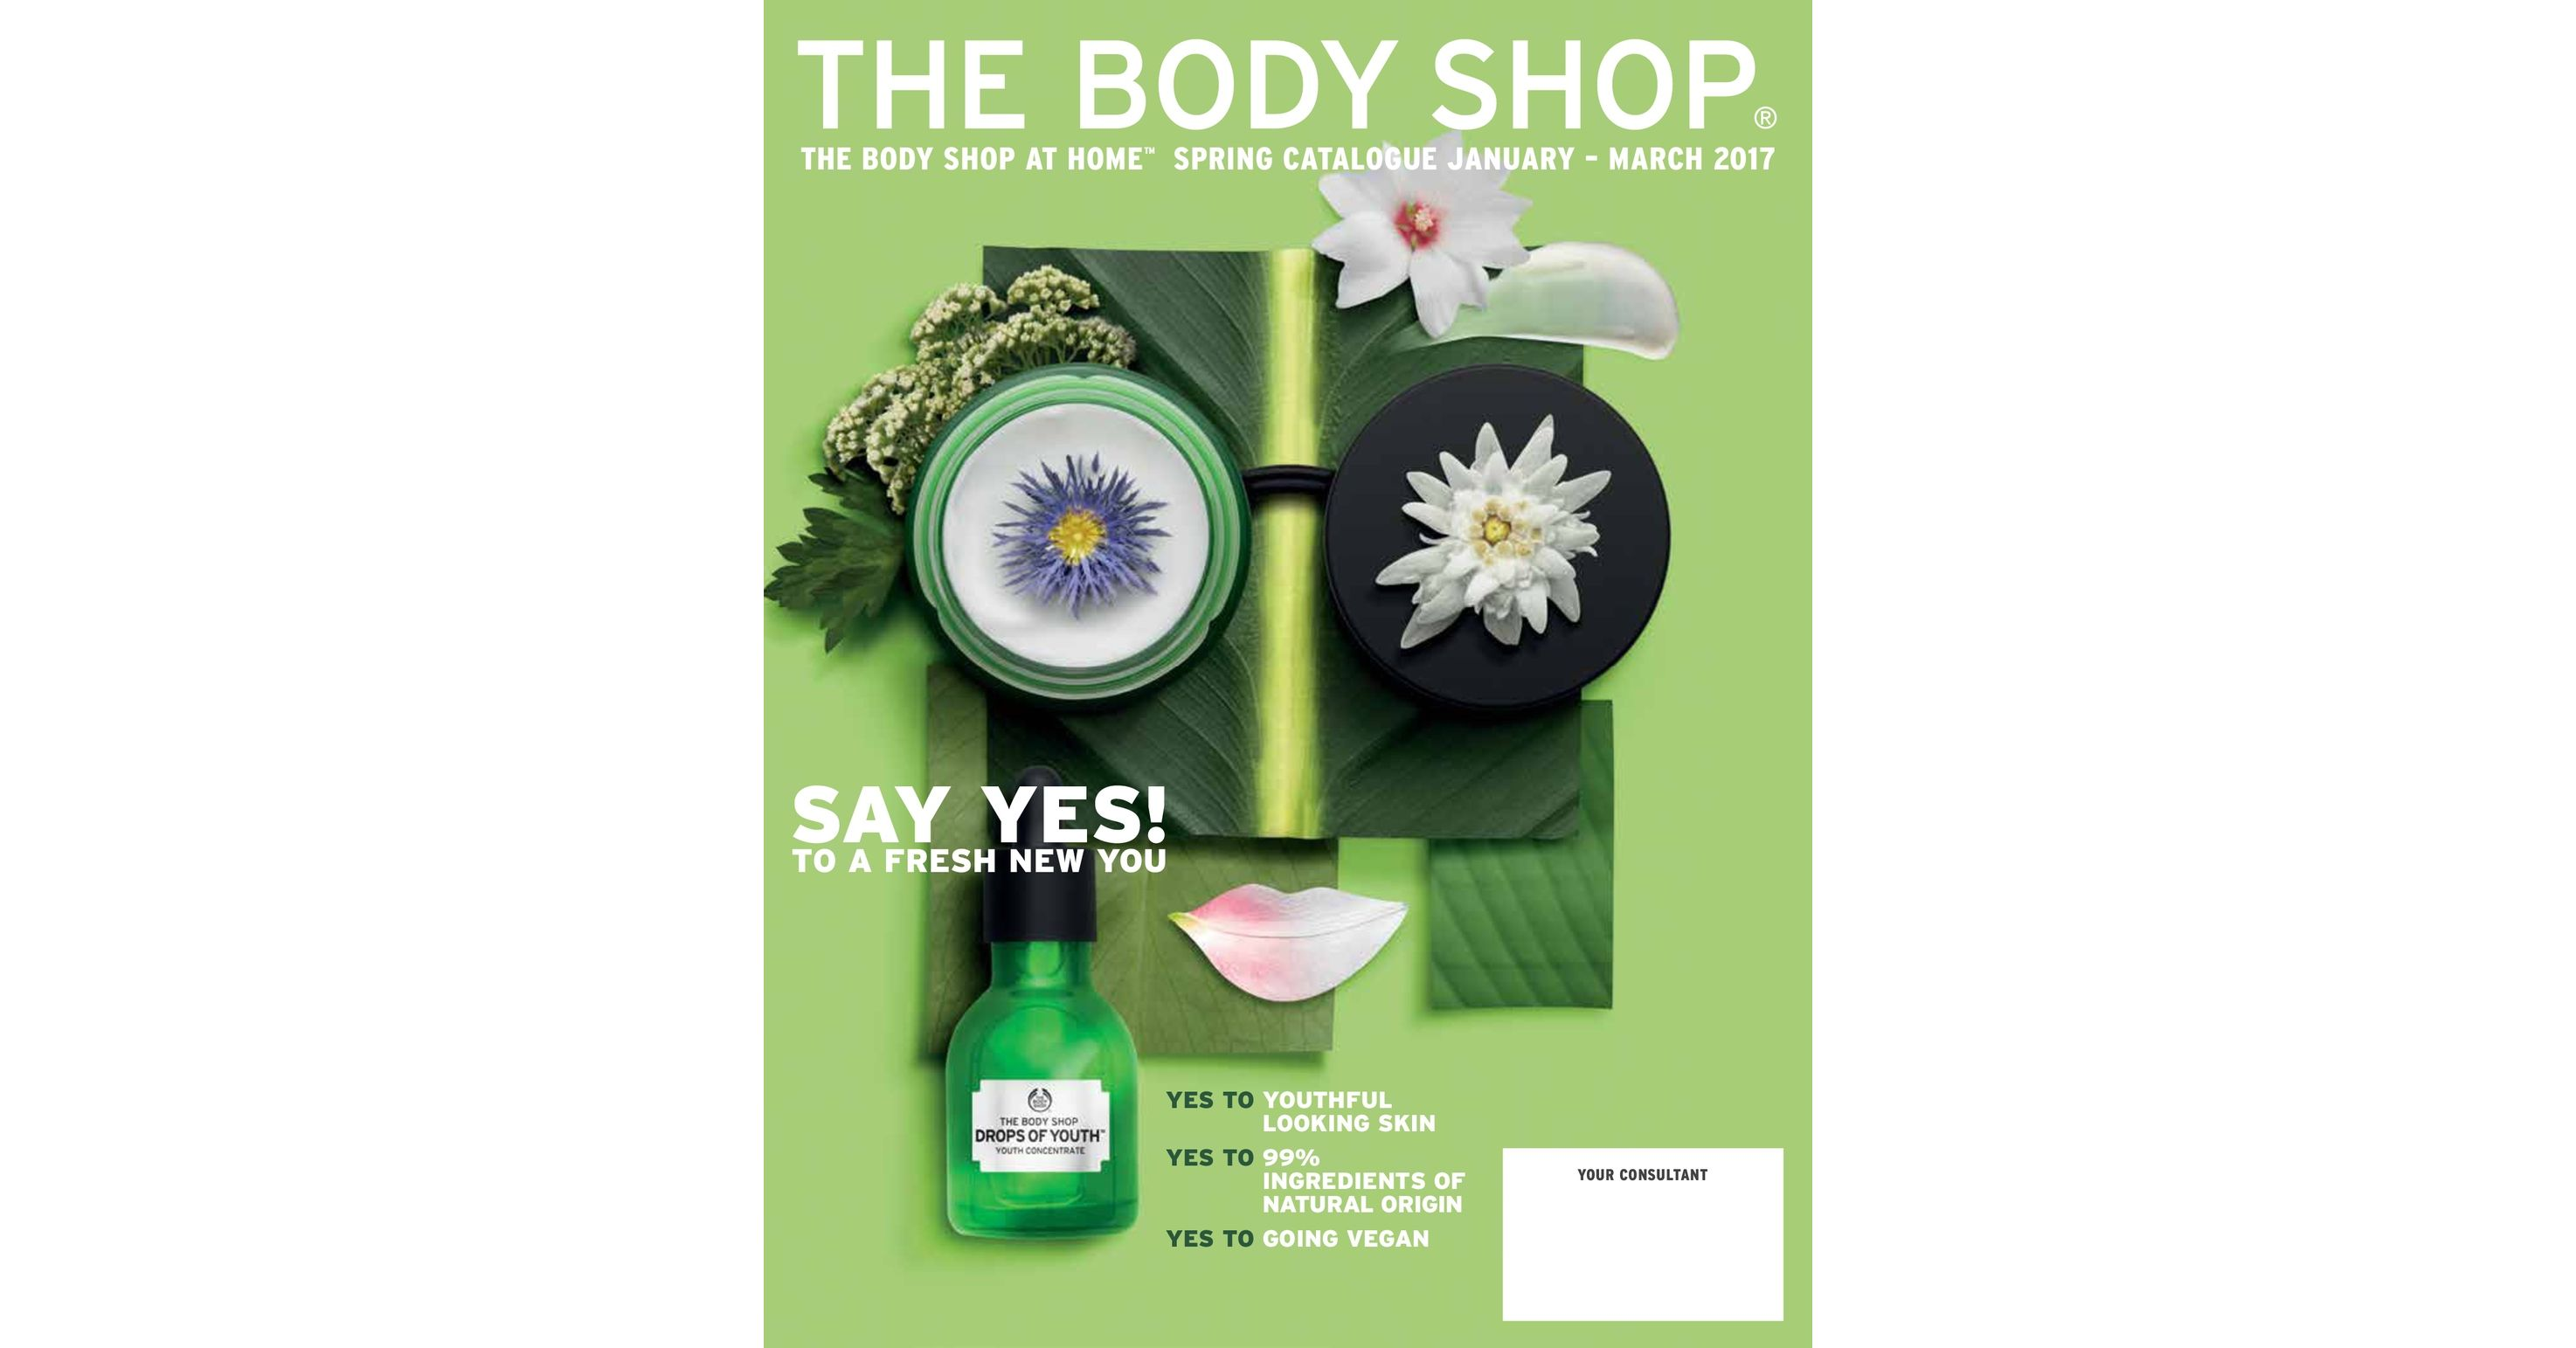 Are Body Shop Products Natural